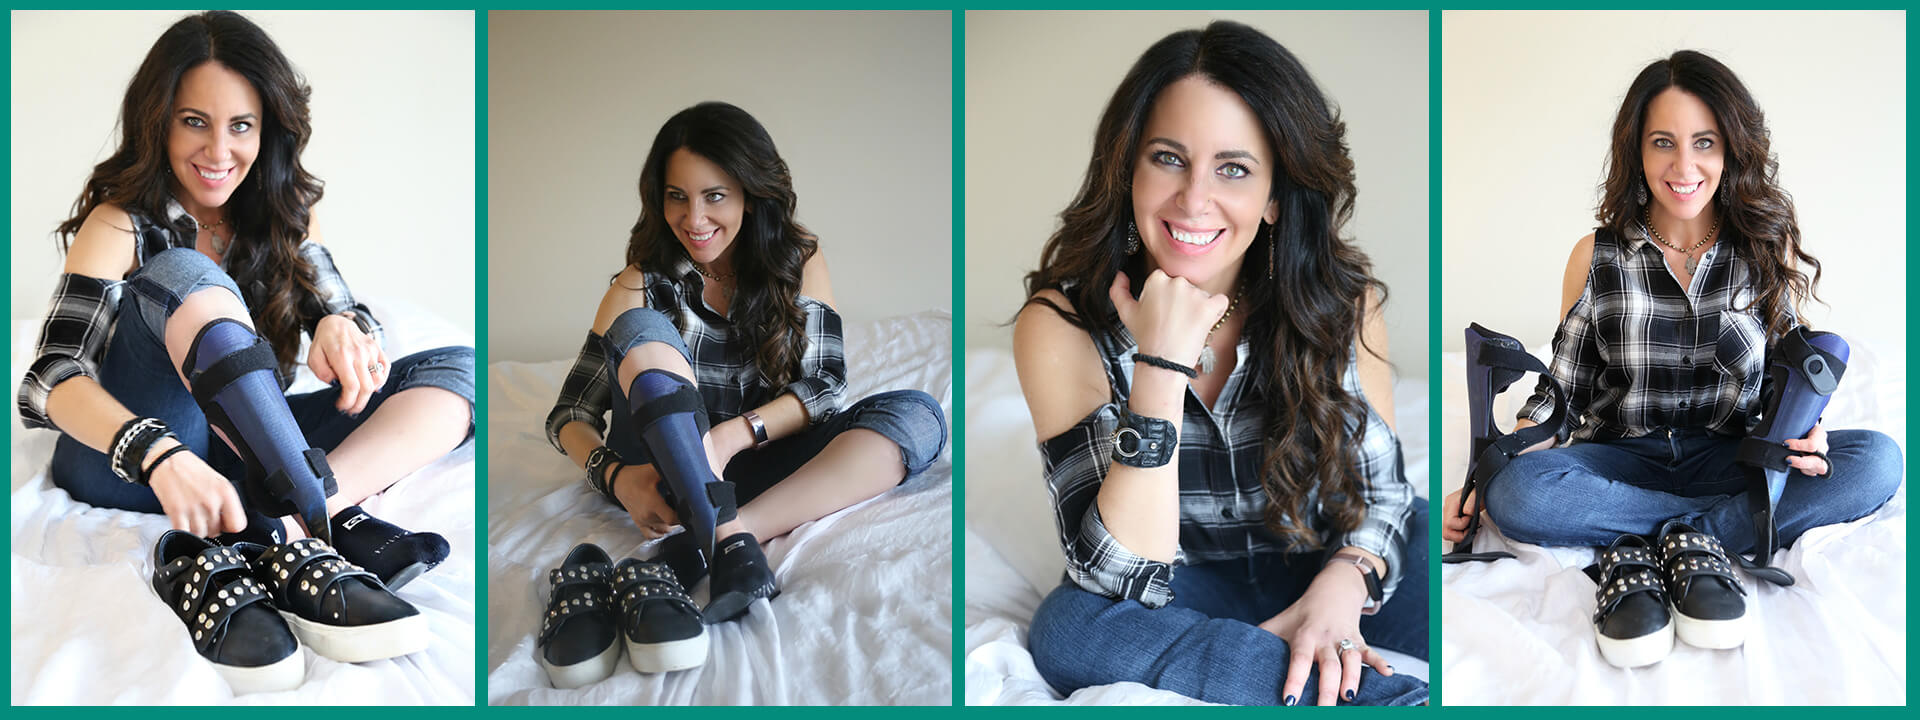 Collage photo of woman with Invisible Disability & Leg Braces